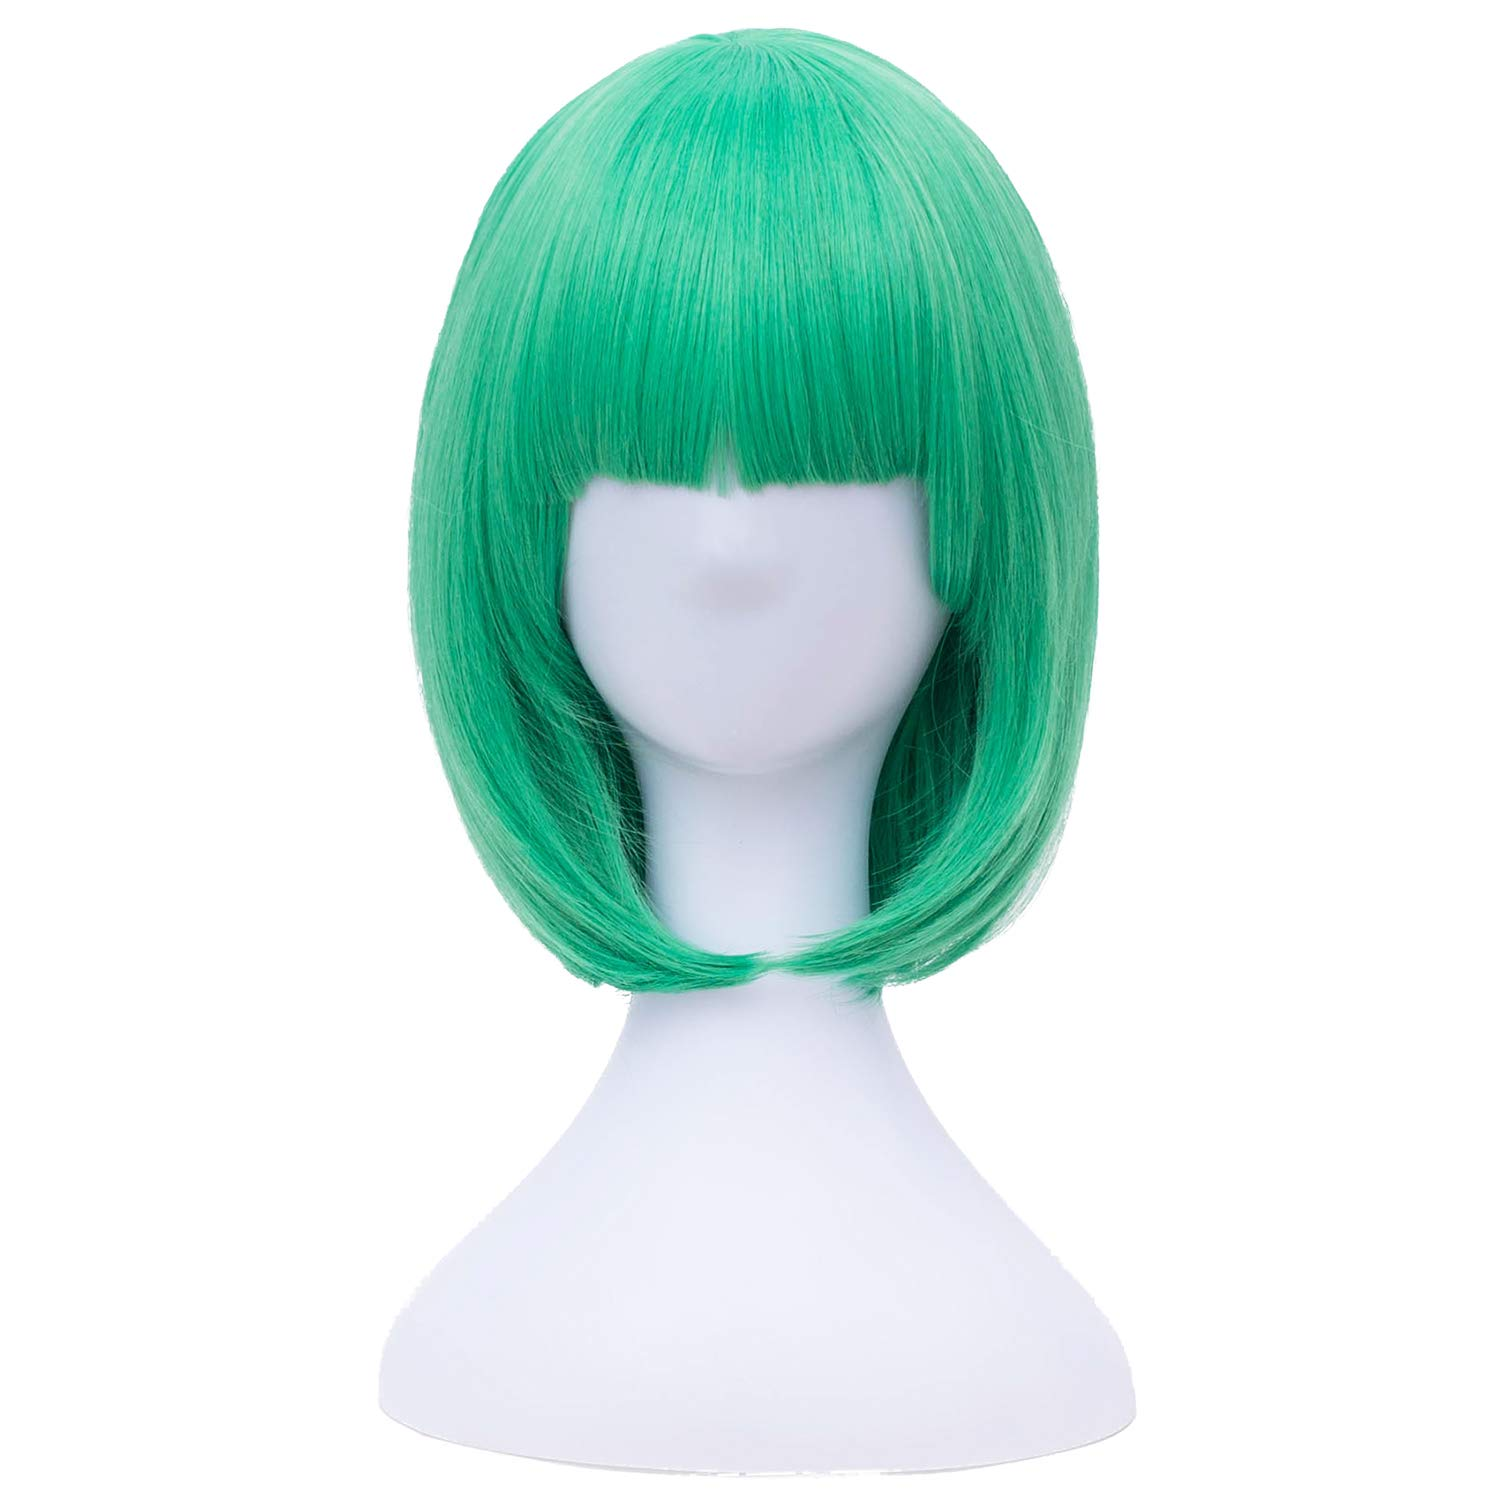 Amazon.com   Green Bob Wigs Short Wig for Women with Bangs Straight  Synthetic Wig Natural As Real Hair BU149   Beauty ad7be1f918d4